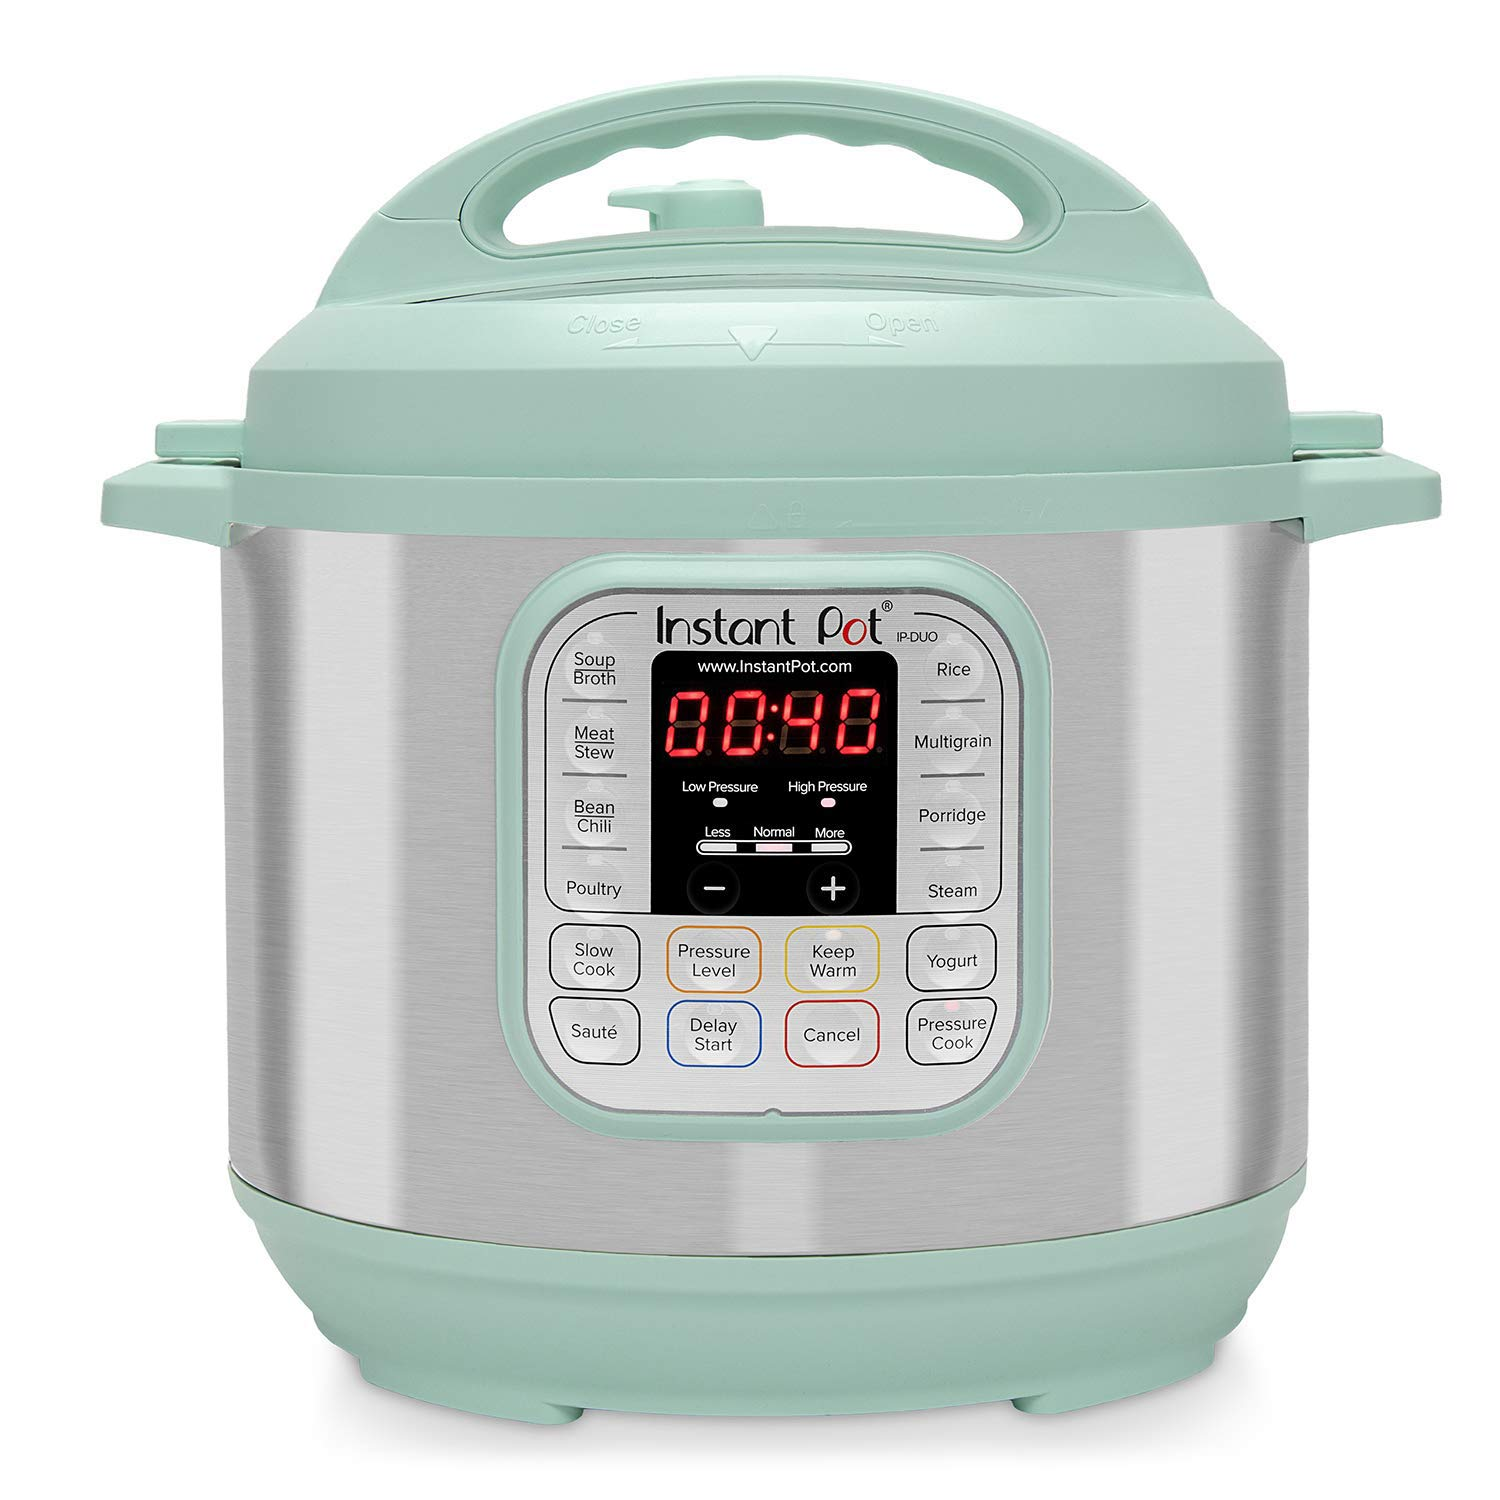 Instant Pot Duo 6 Qt 7-in-1 Multi-Use Programmable Pressure Cooker